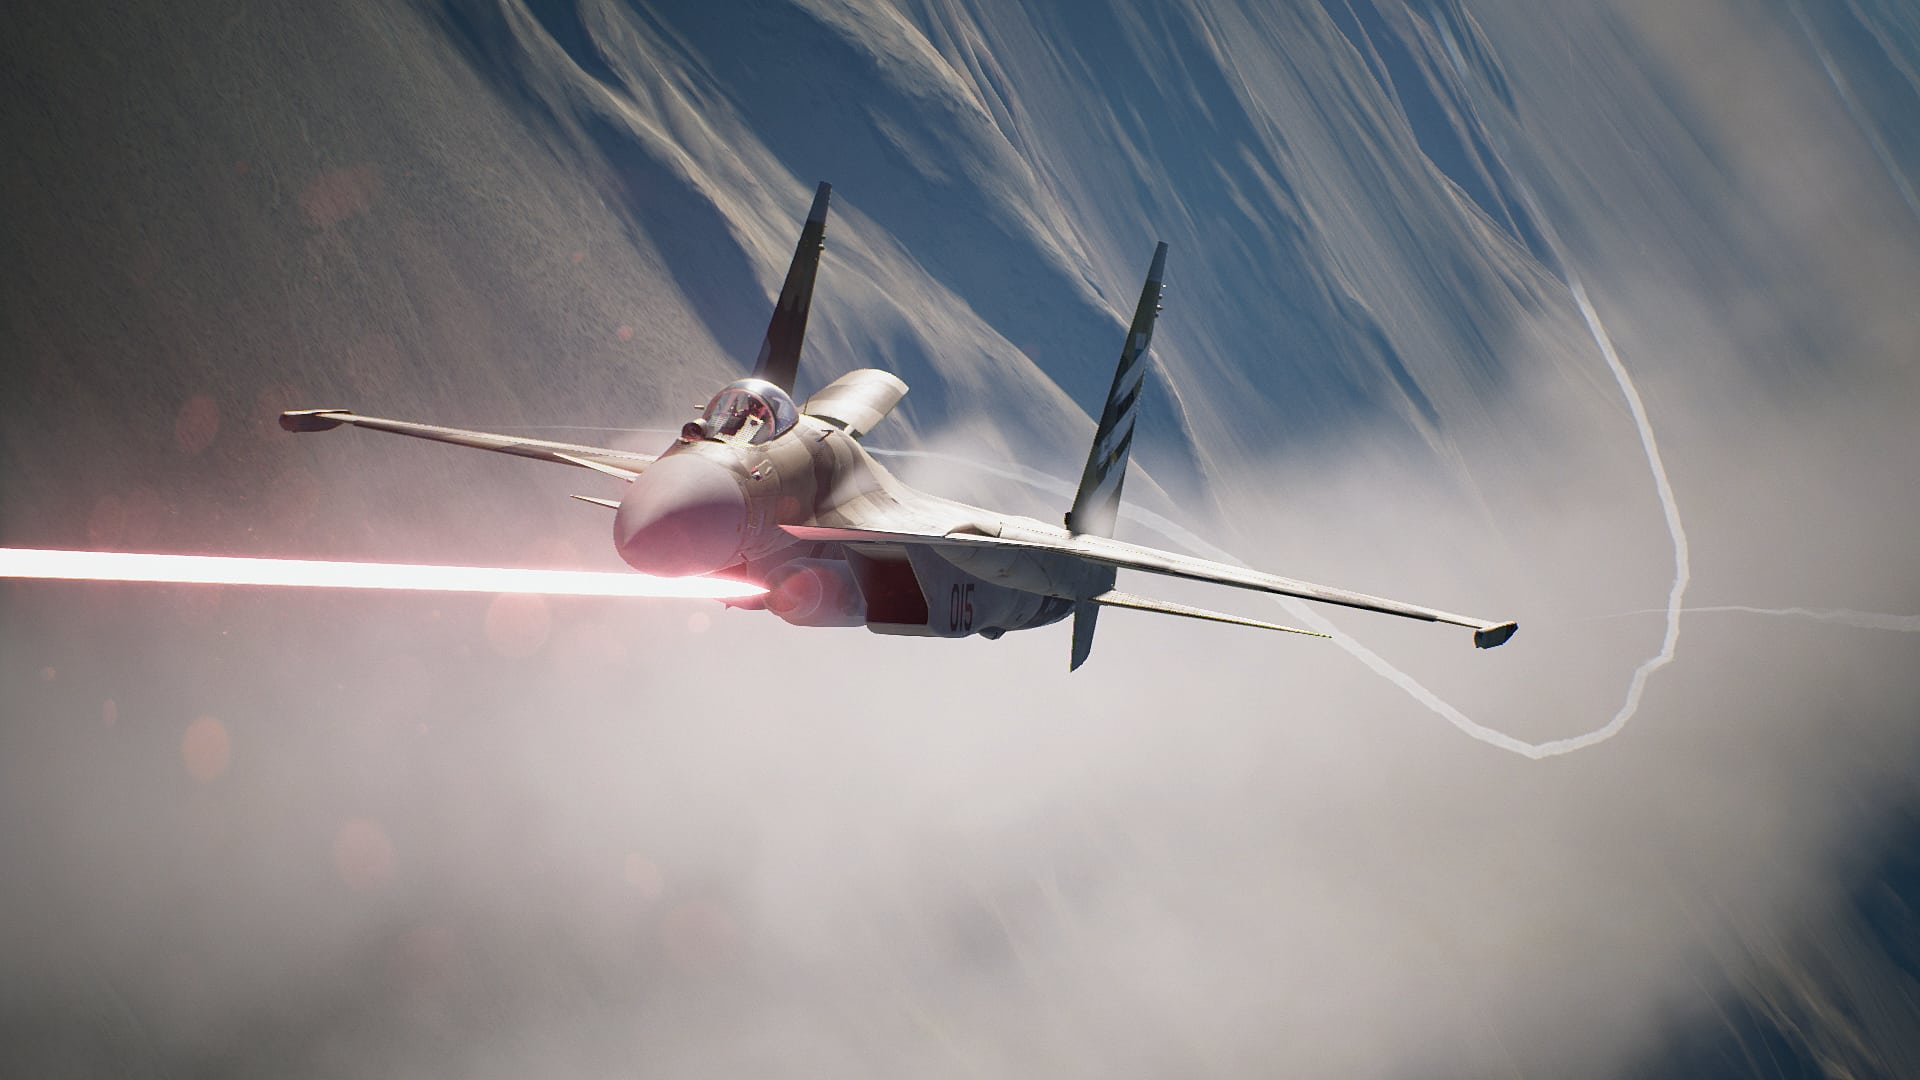 Ace combat pc download free full | Ace Combat 7 PC Free Download